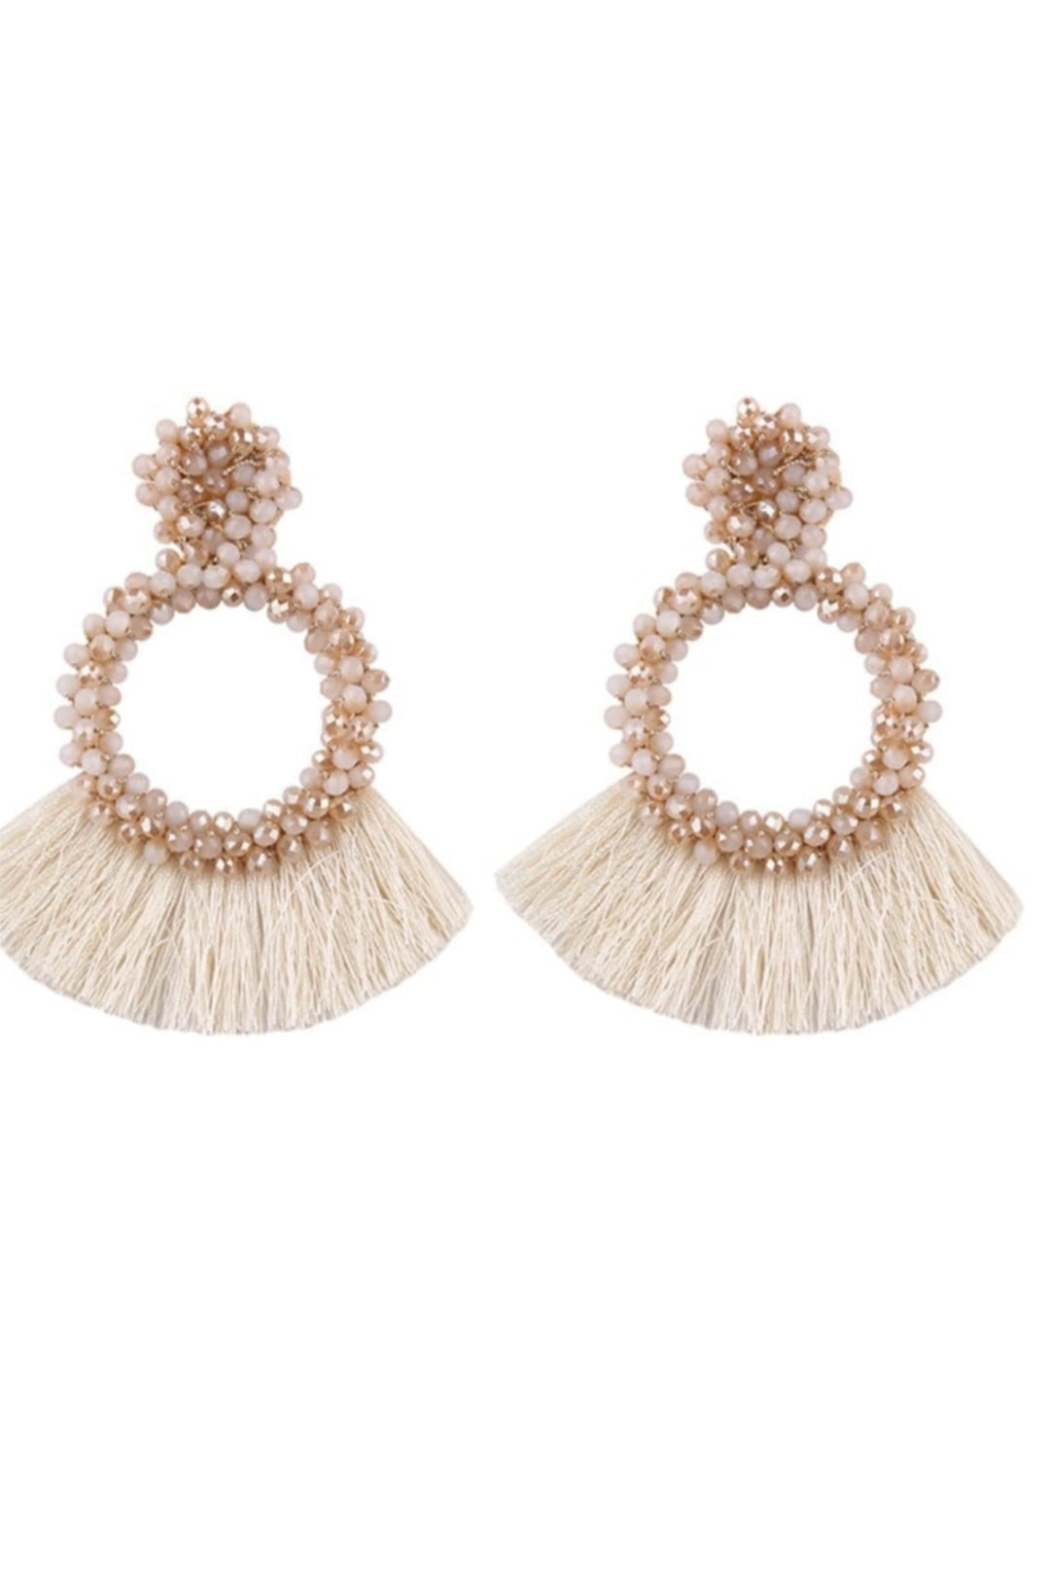 Petunias Beaded Fringe Earrings - Front Cropped Image